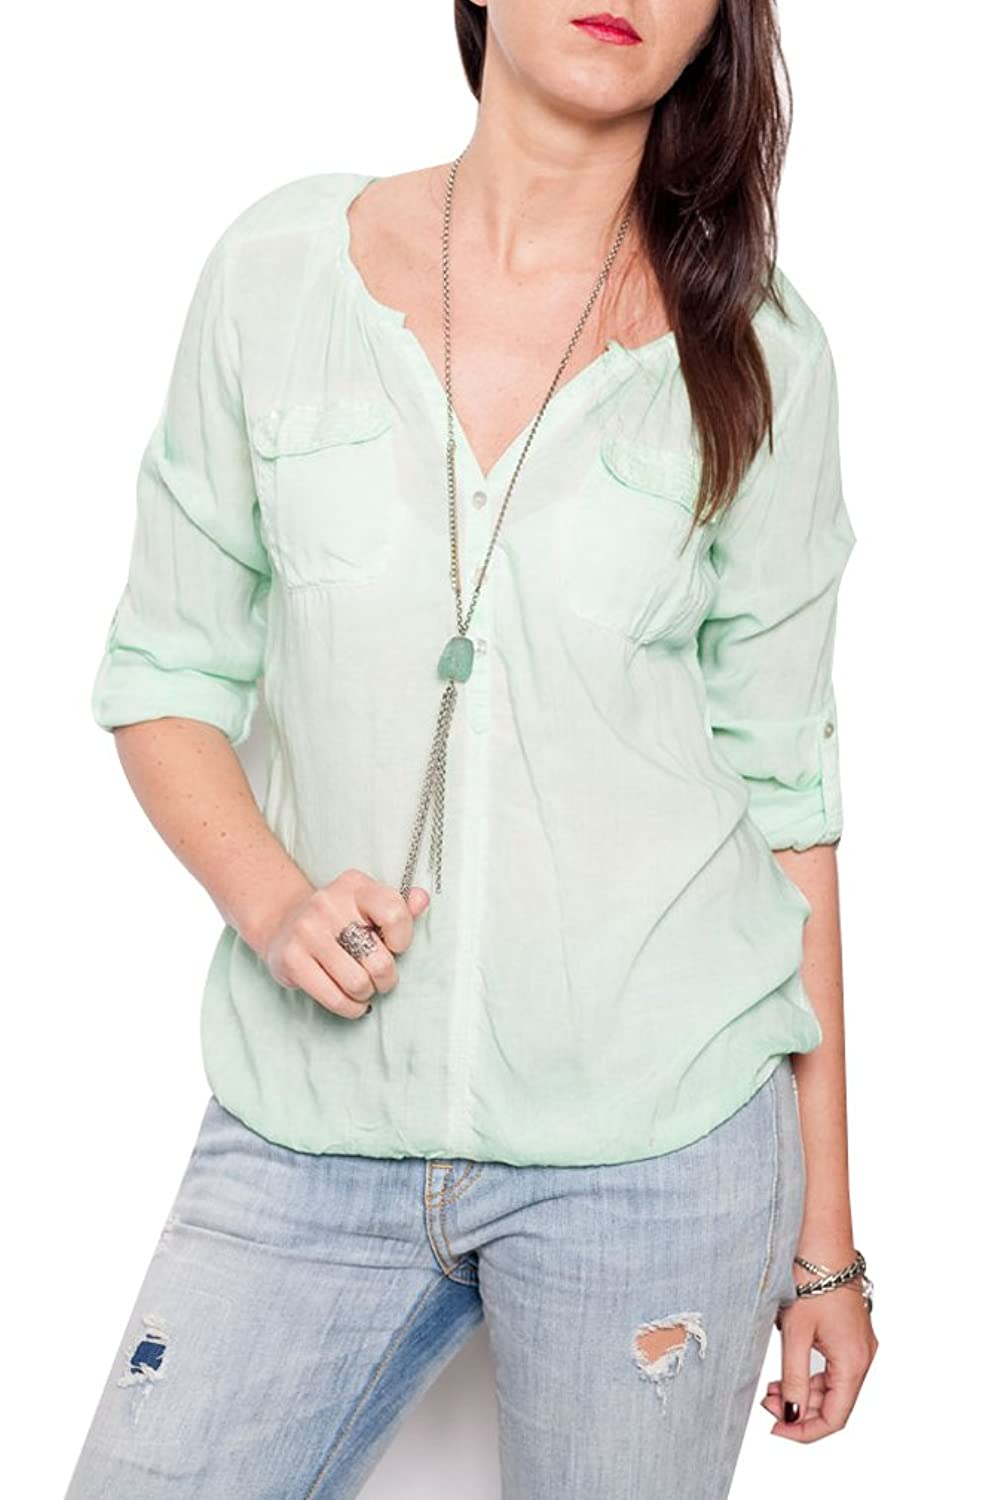 Overdrive womens Pigment Spray Blouse Embellished with Sequins